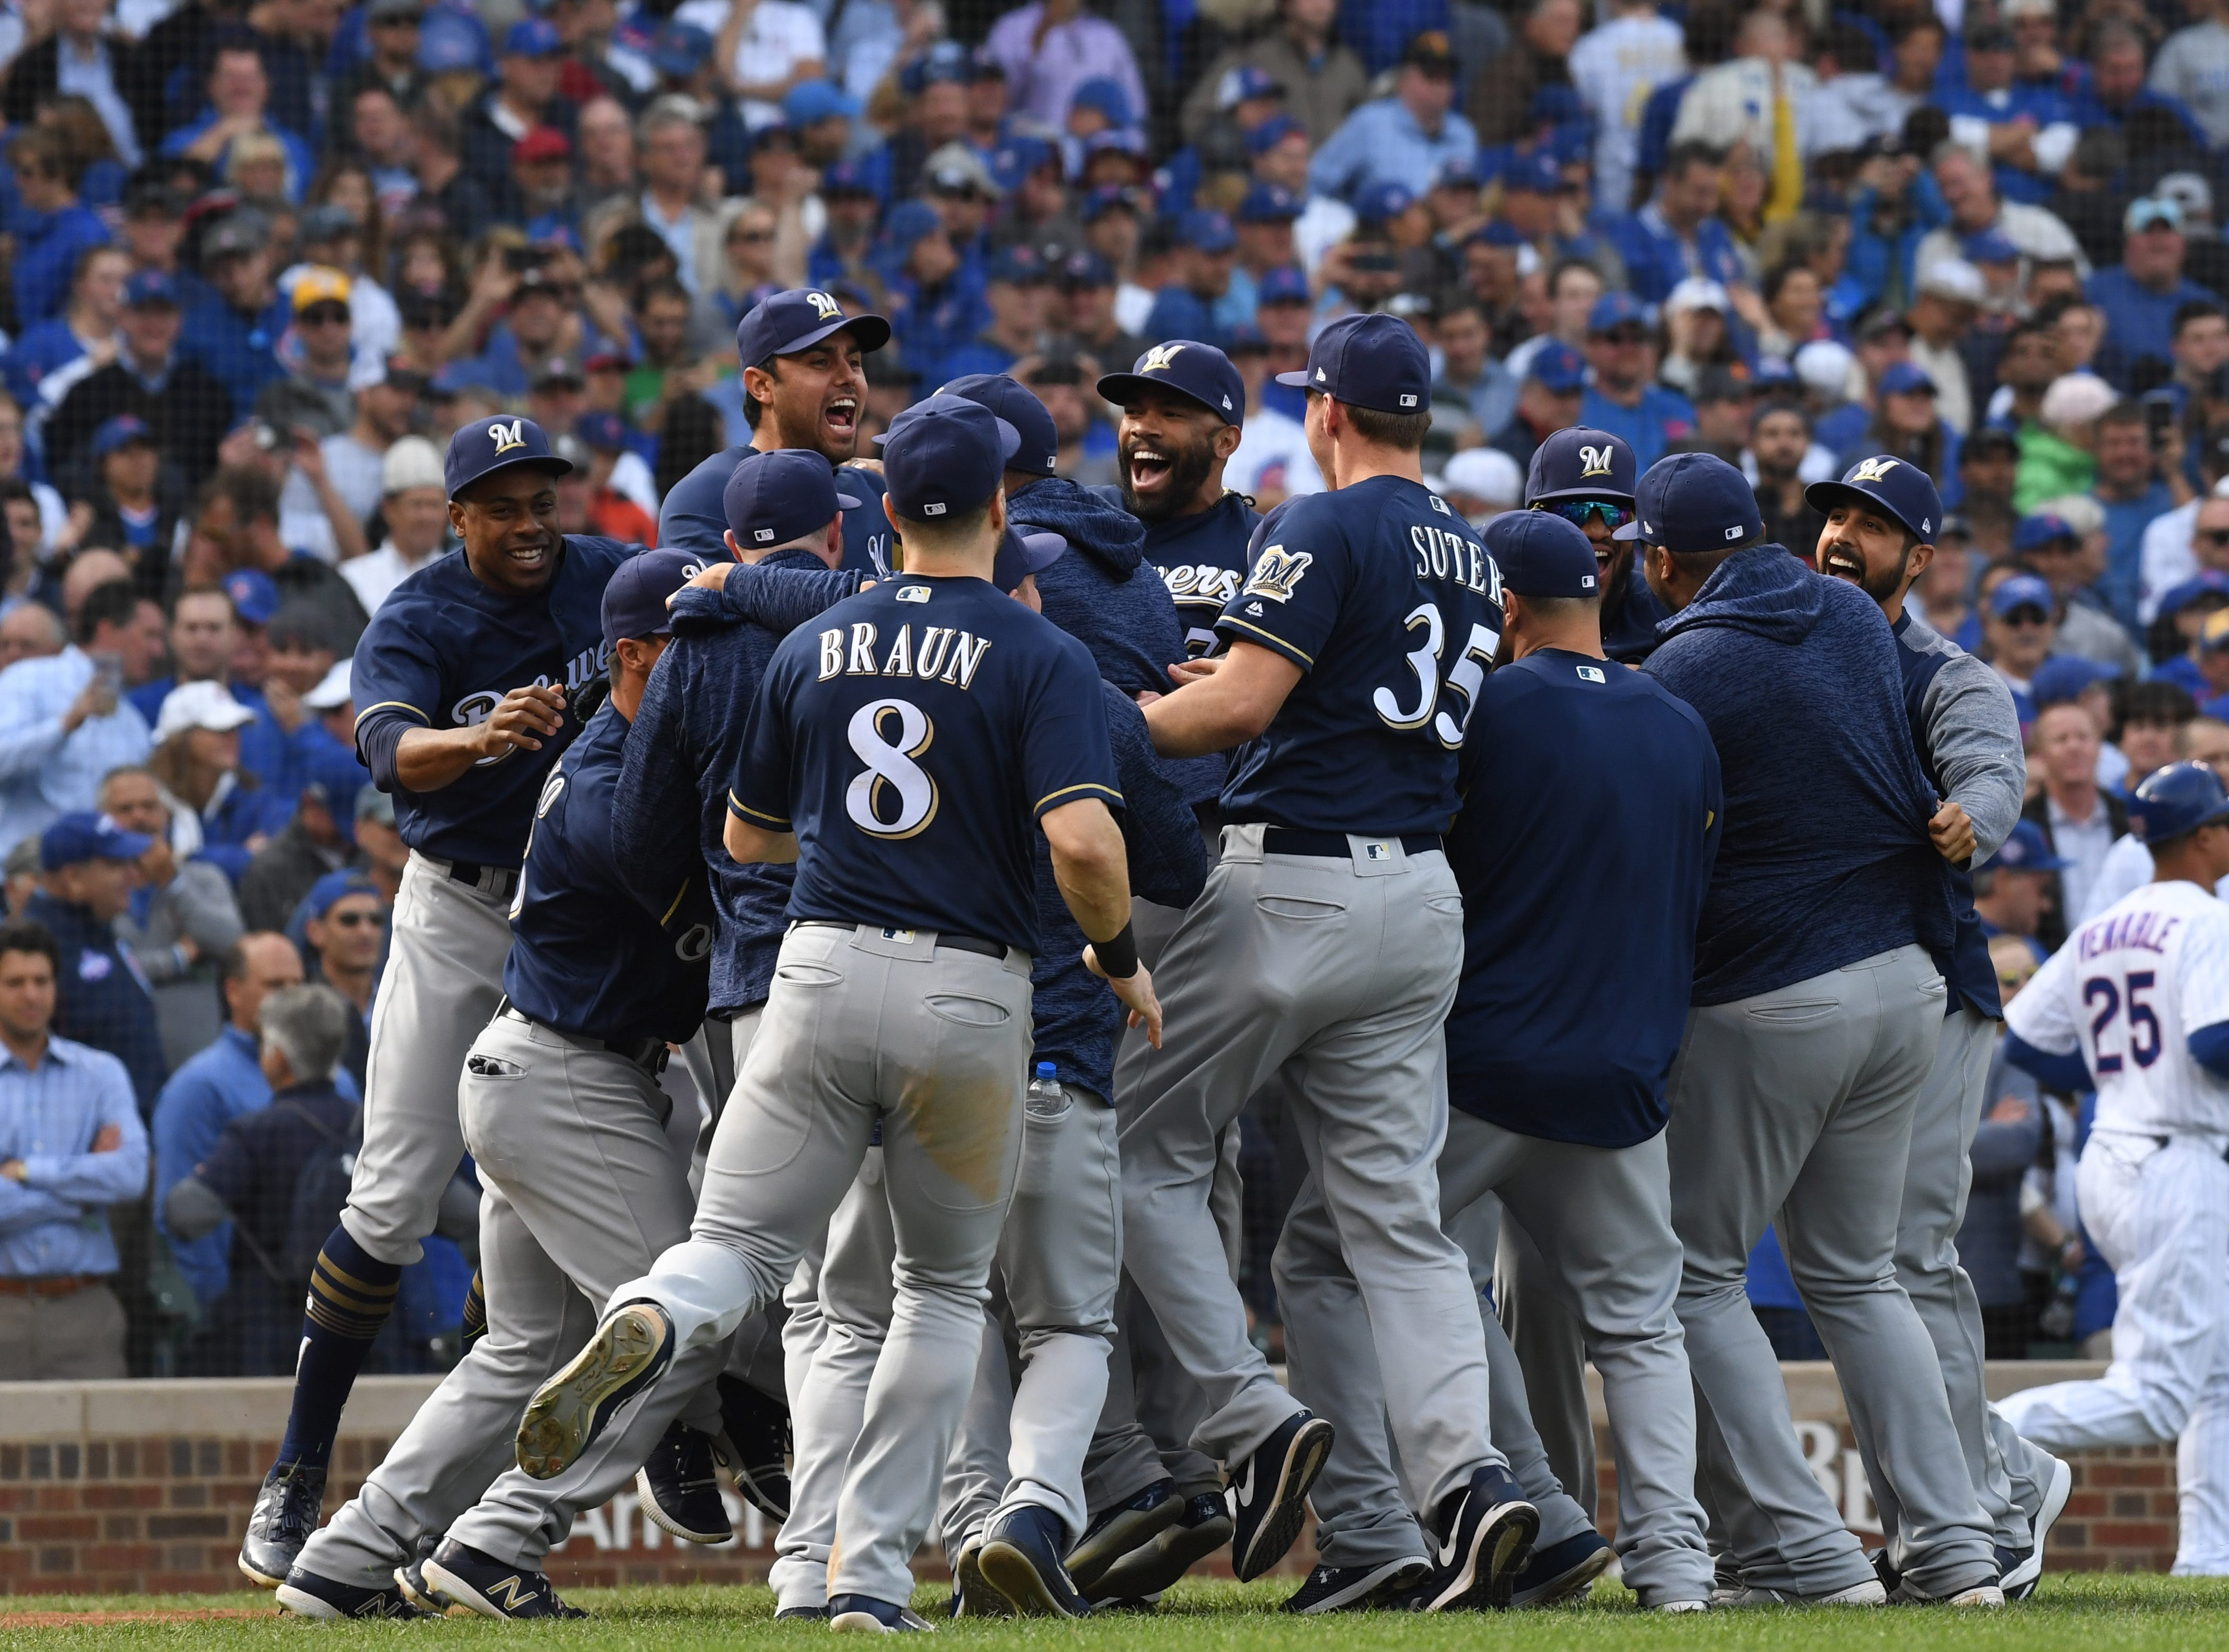 Brewers celebrate after the final out of the 3-1 win against the Cubs.